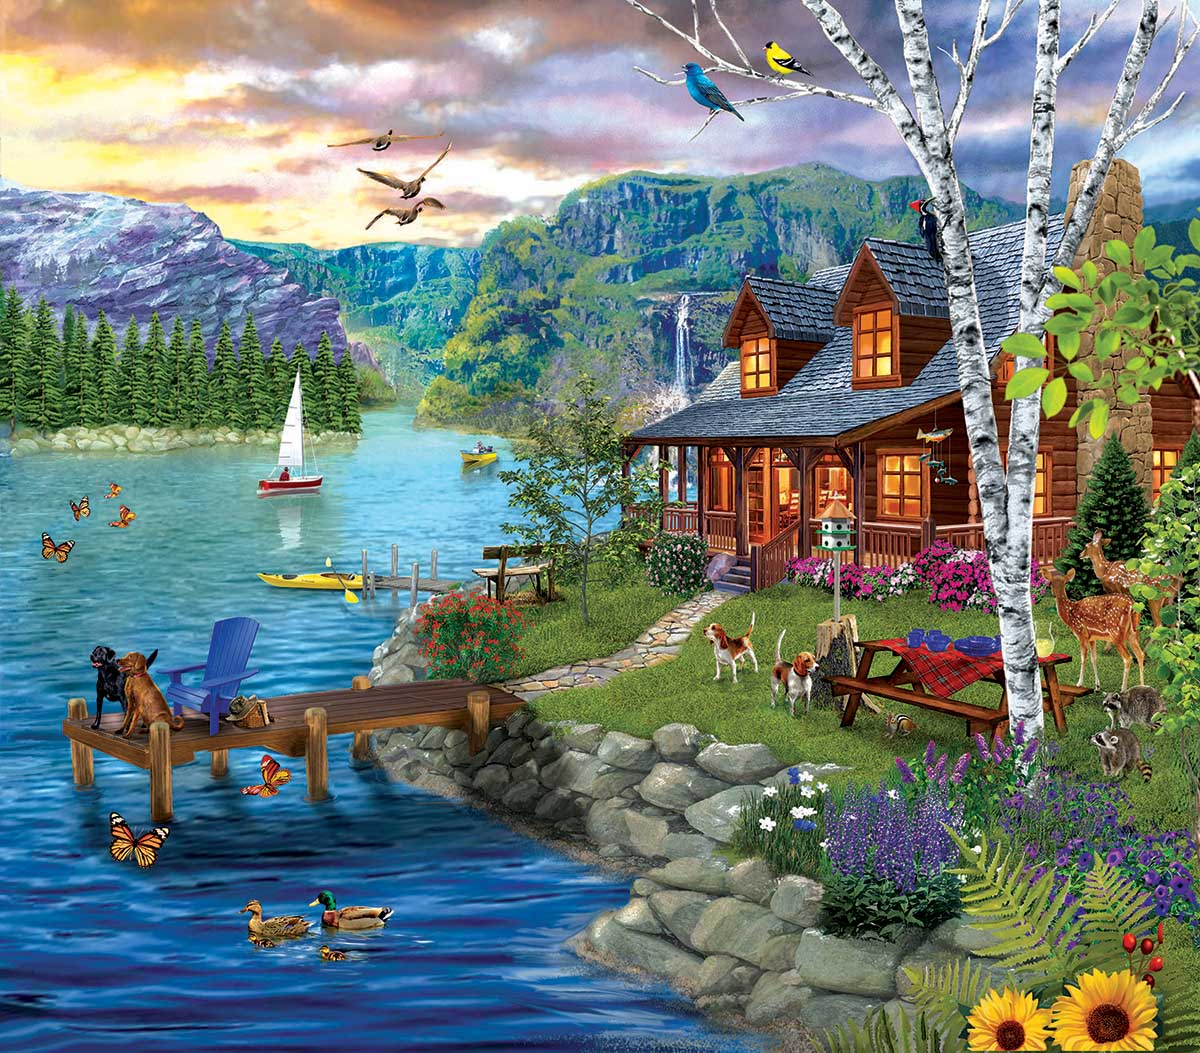 Peaceful Summer Summer Jigsaw Puzzle